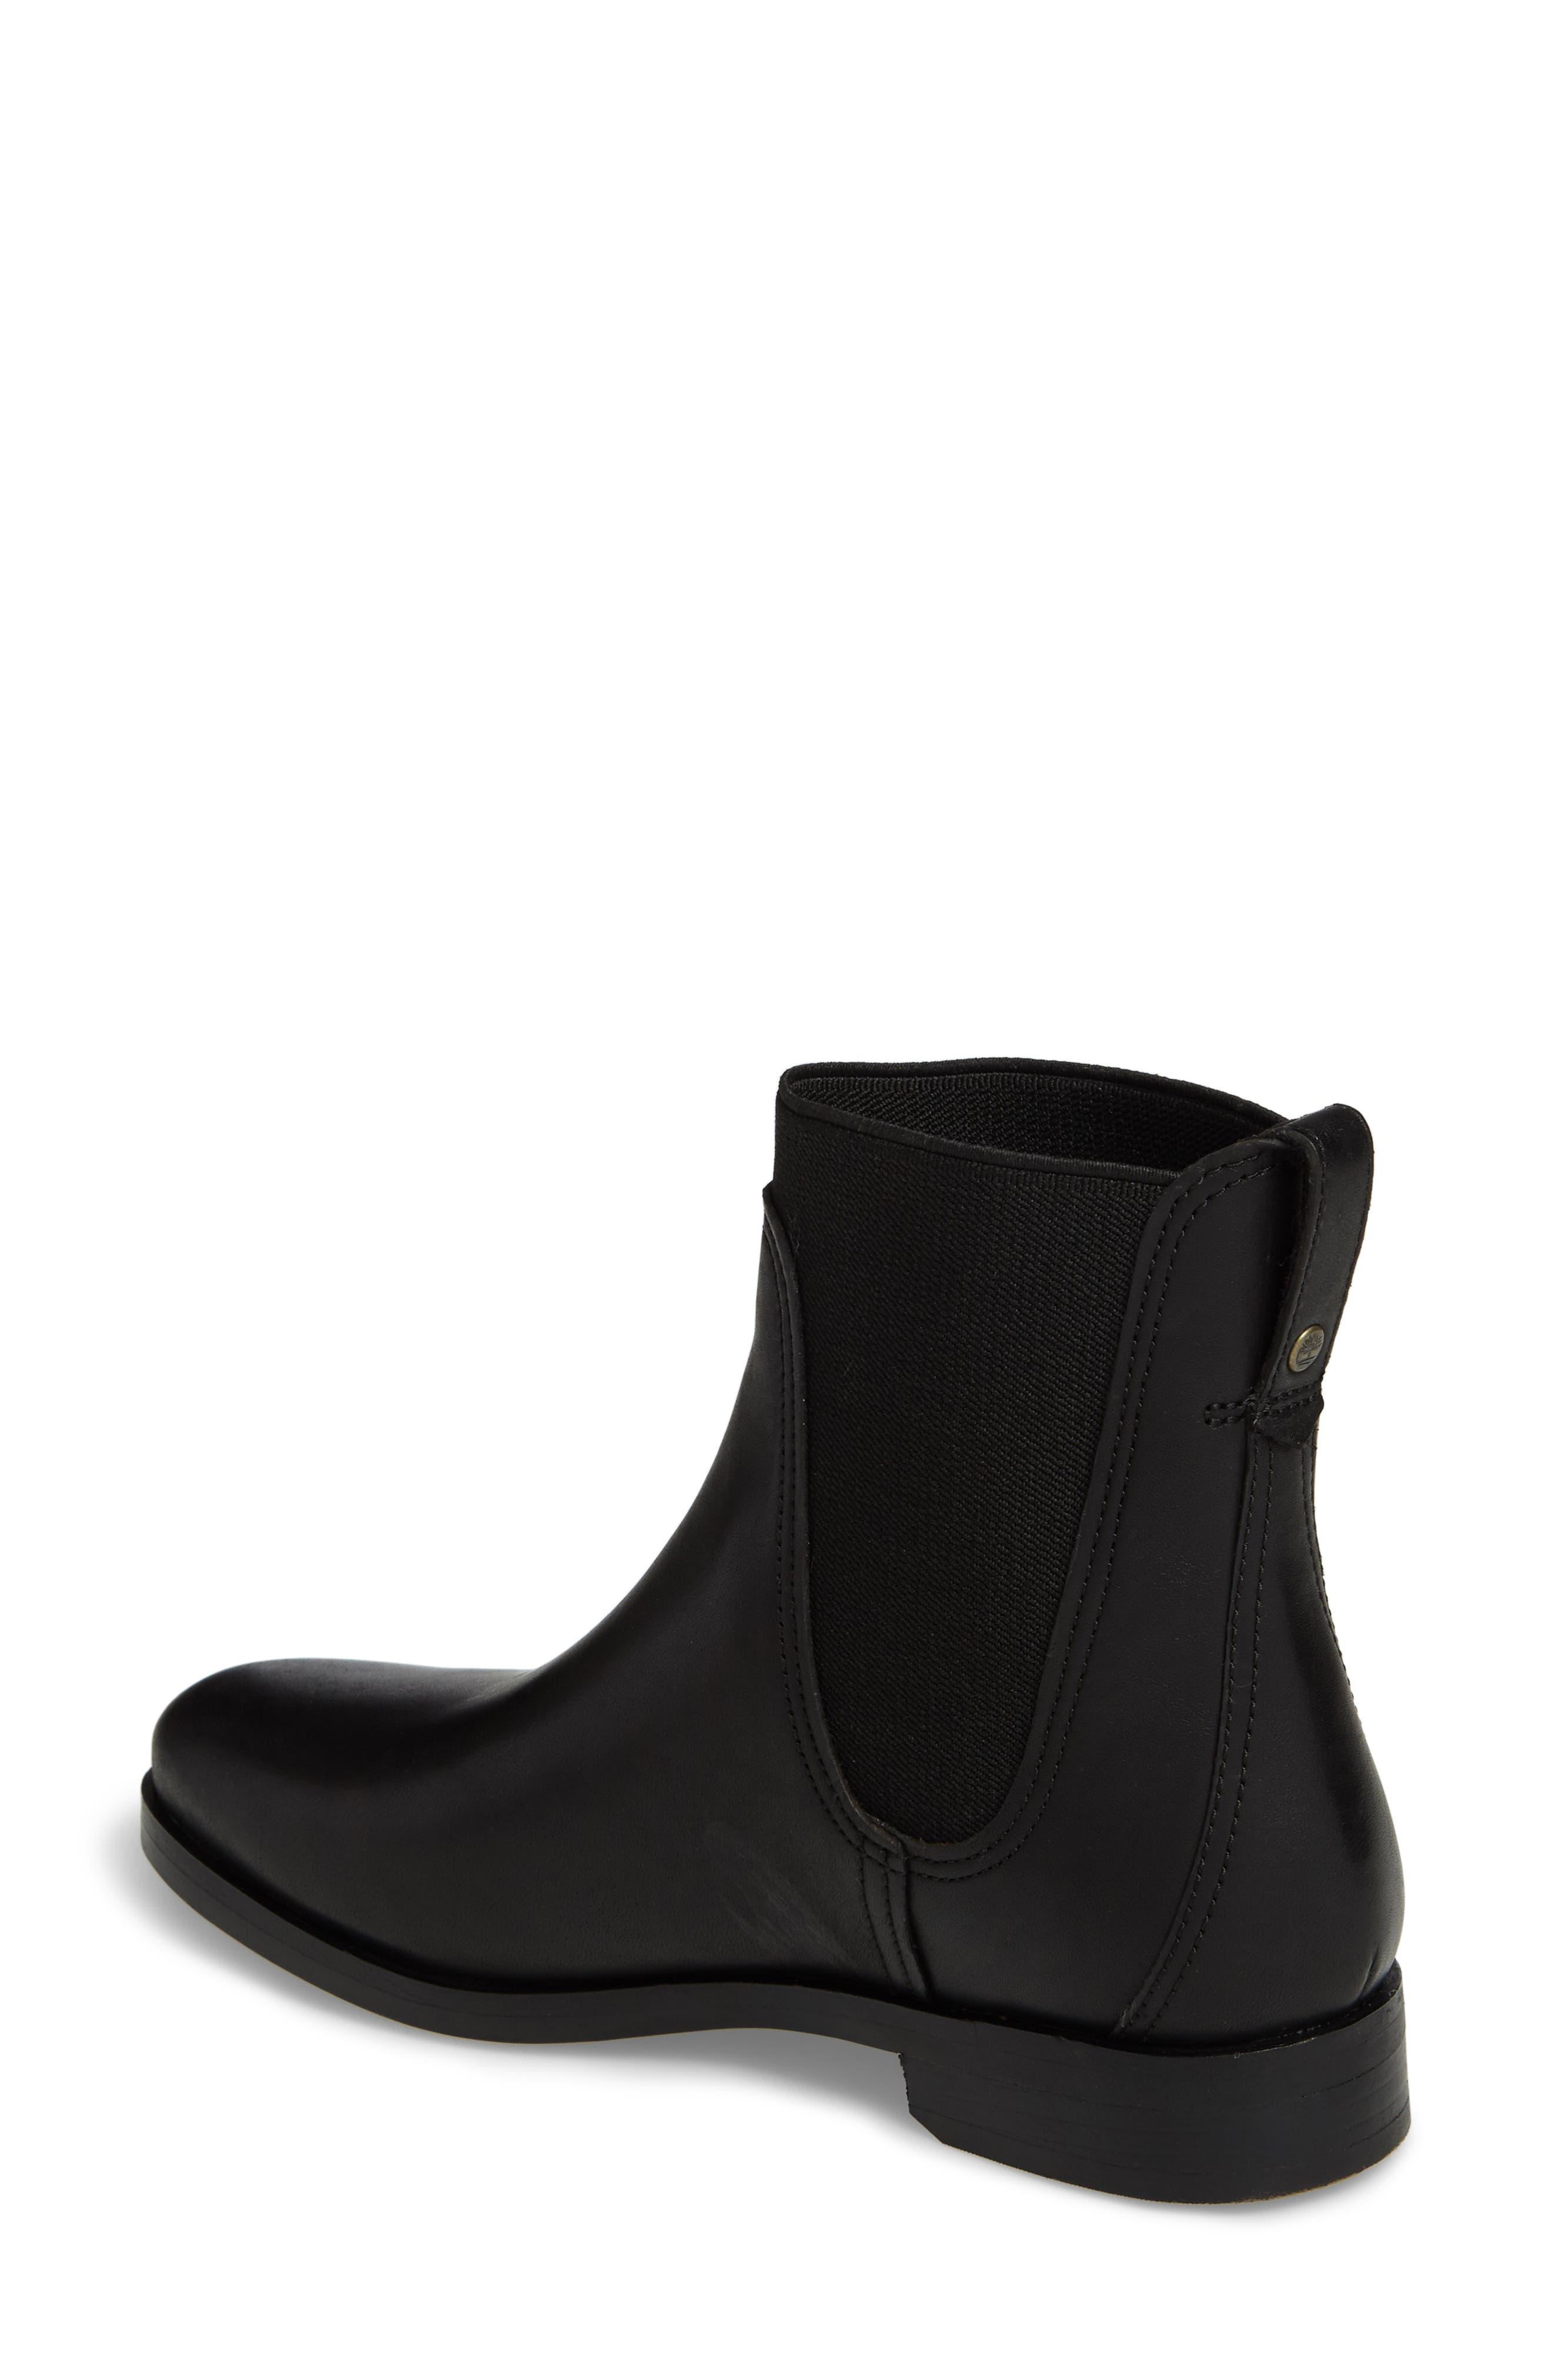 Somers Falls Water Resistant Chelsea Boot,                             Alternate thumbnail 2, color,                             Jet Black Swank Leather